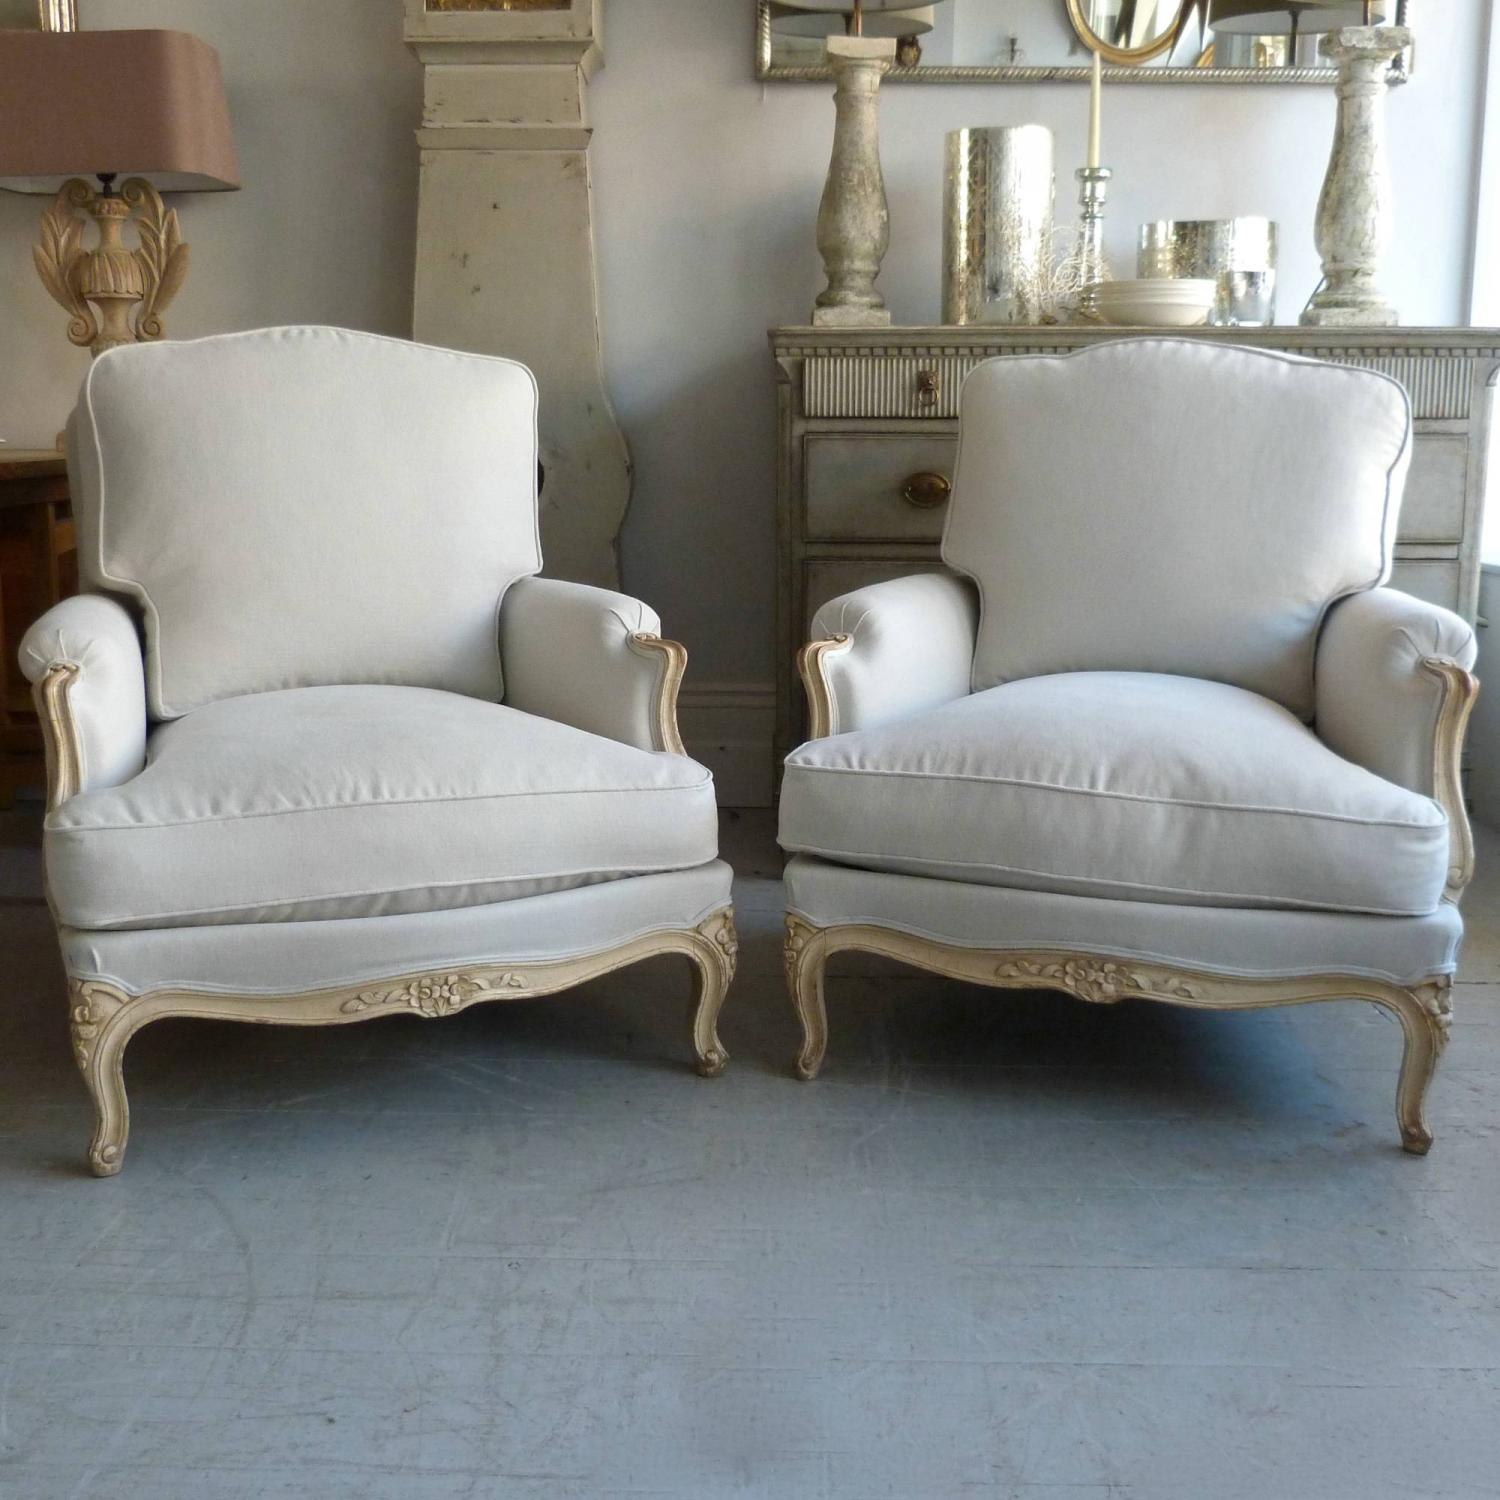 FINE PAIR OF FRENCH BERGERE ARMCHAIRS IN ORIGINAL PAINT